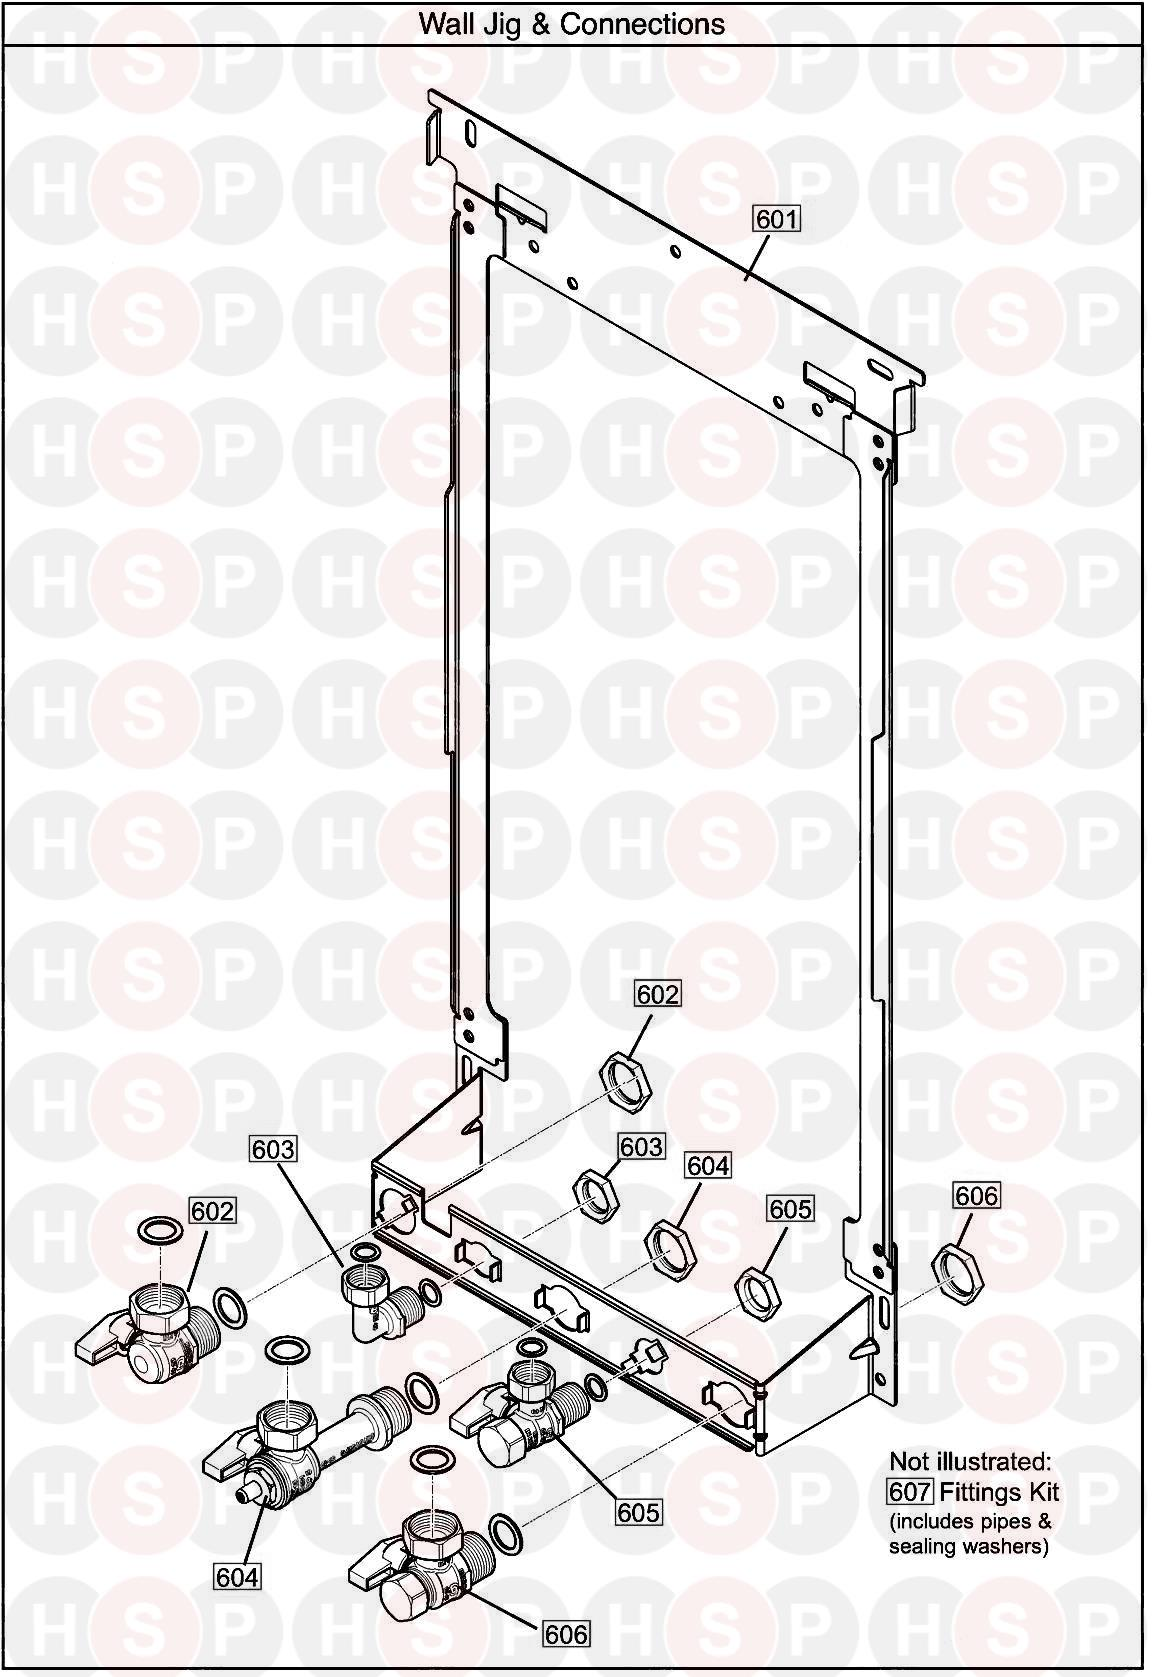 Biasi Combi Boiler Wiring Diagram Manual Guide Baxi Ecoblue 24 Wall Jig Heating Spare Parts Installation Review